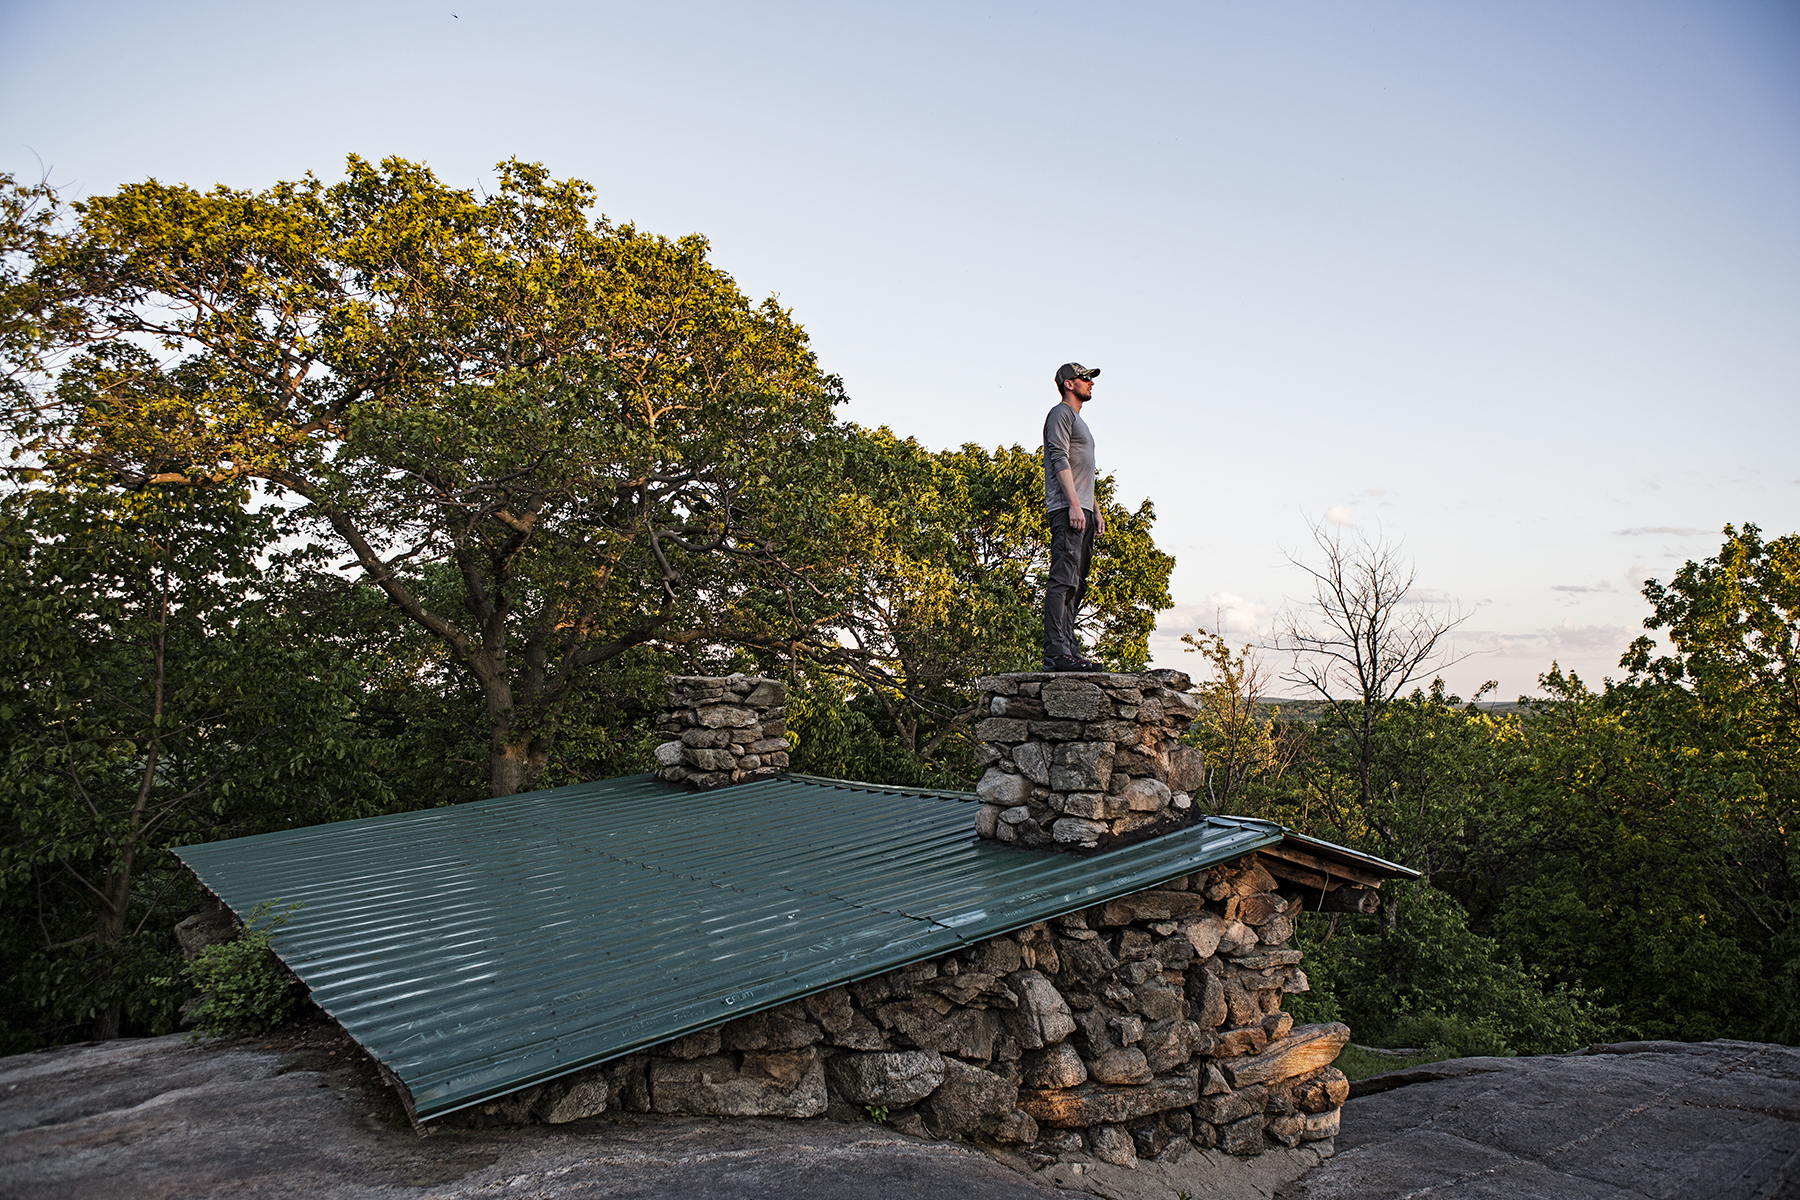 Frank on the chimney of the Stockbridge shelter, getting the best view.